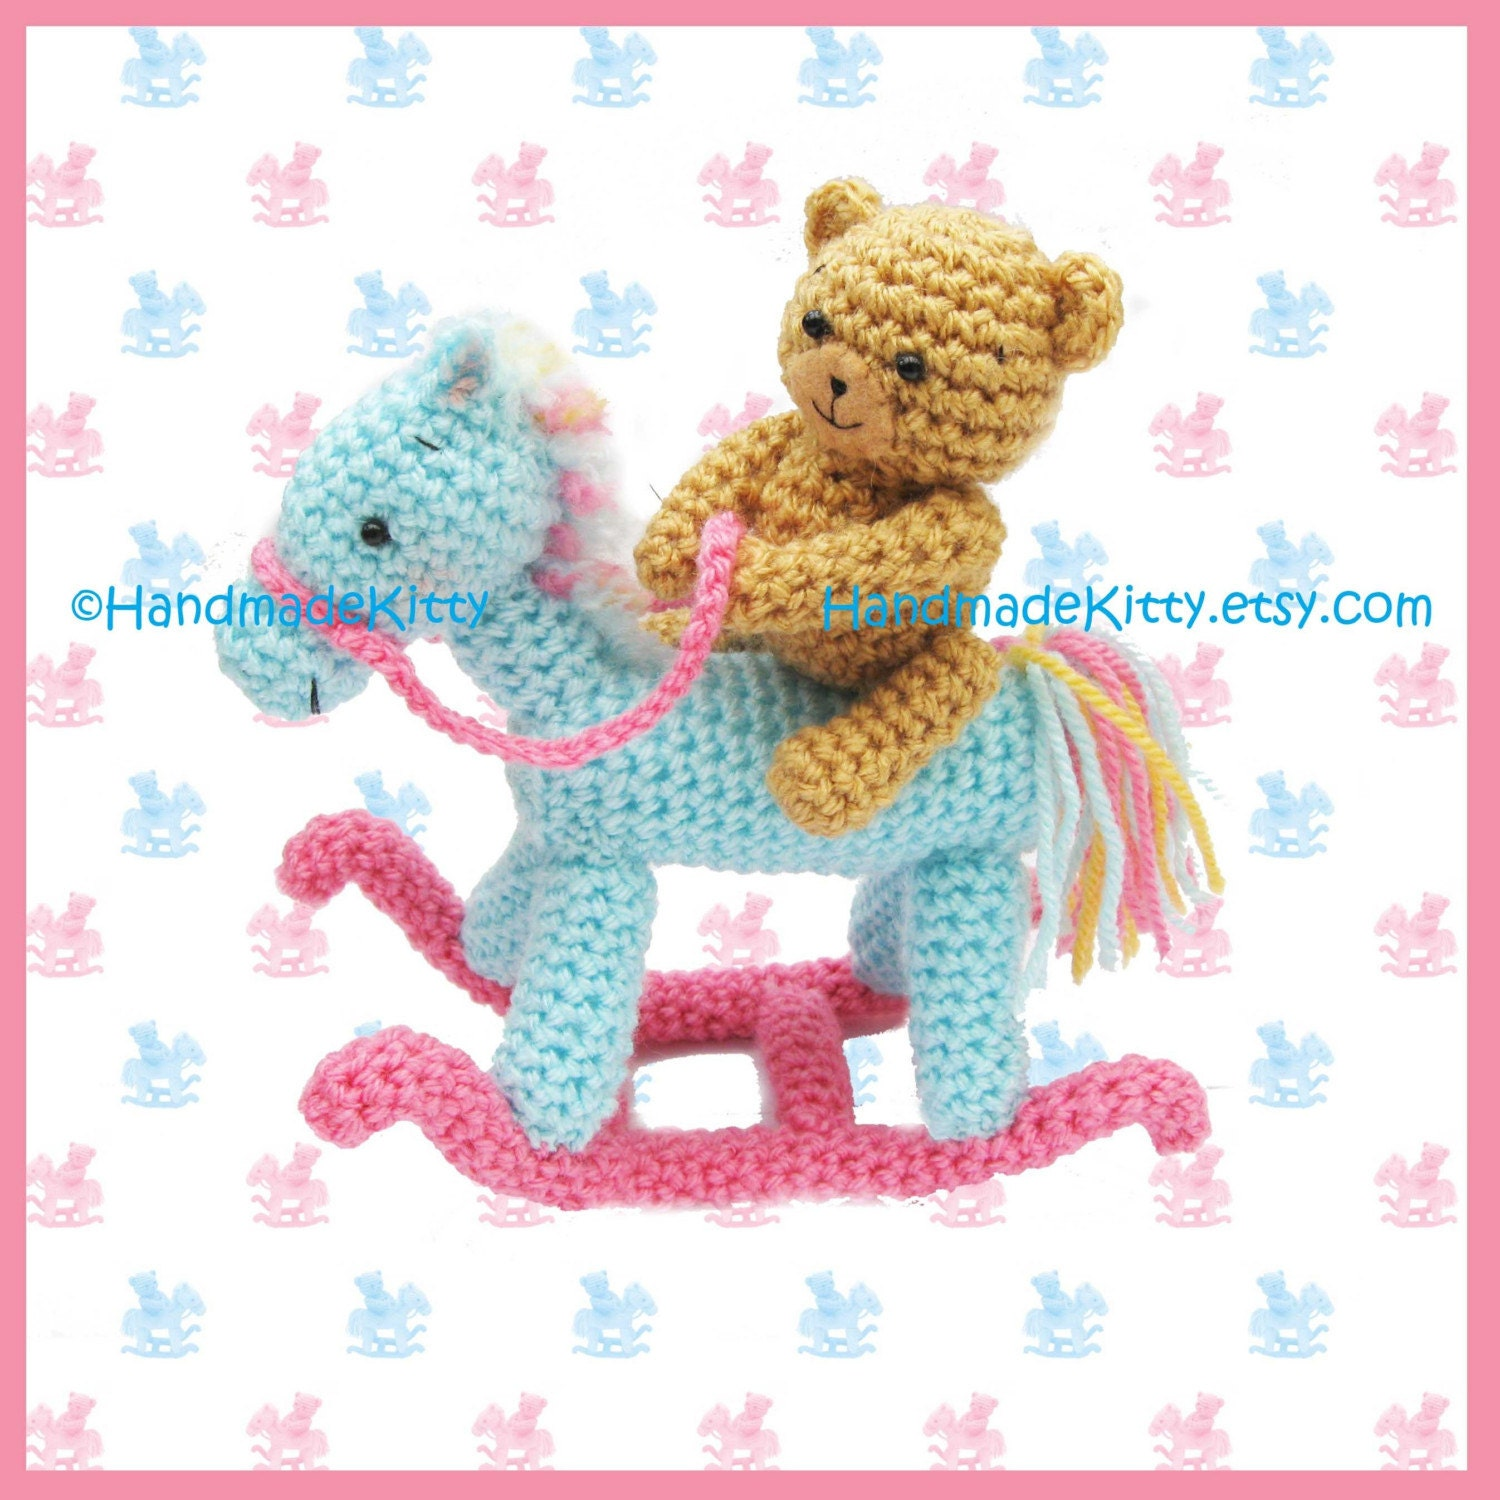 Handmadekitty Bear On A Rocking Horse Amigurumi Crochet Pattern By Handmadekitty